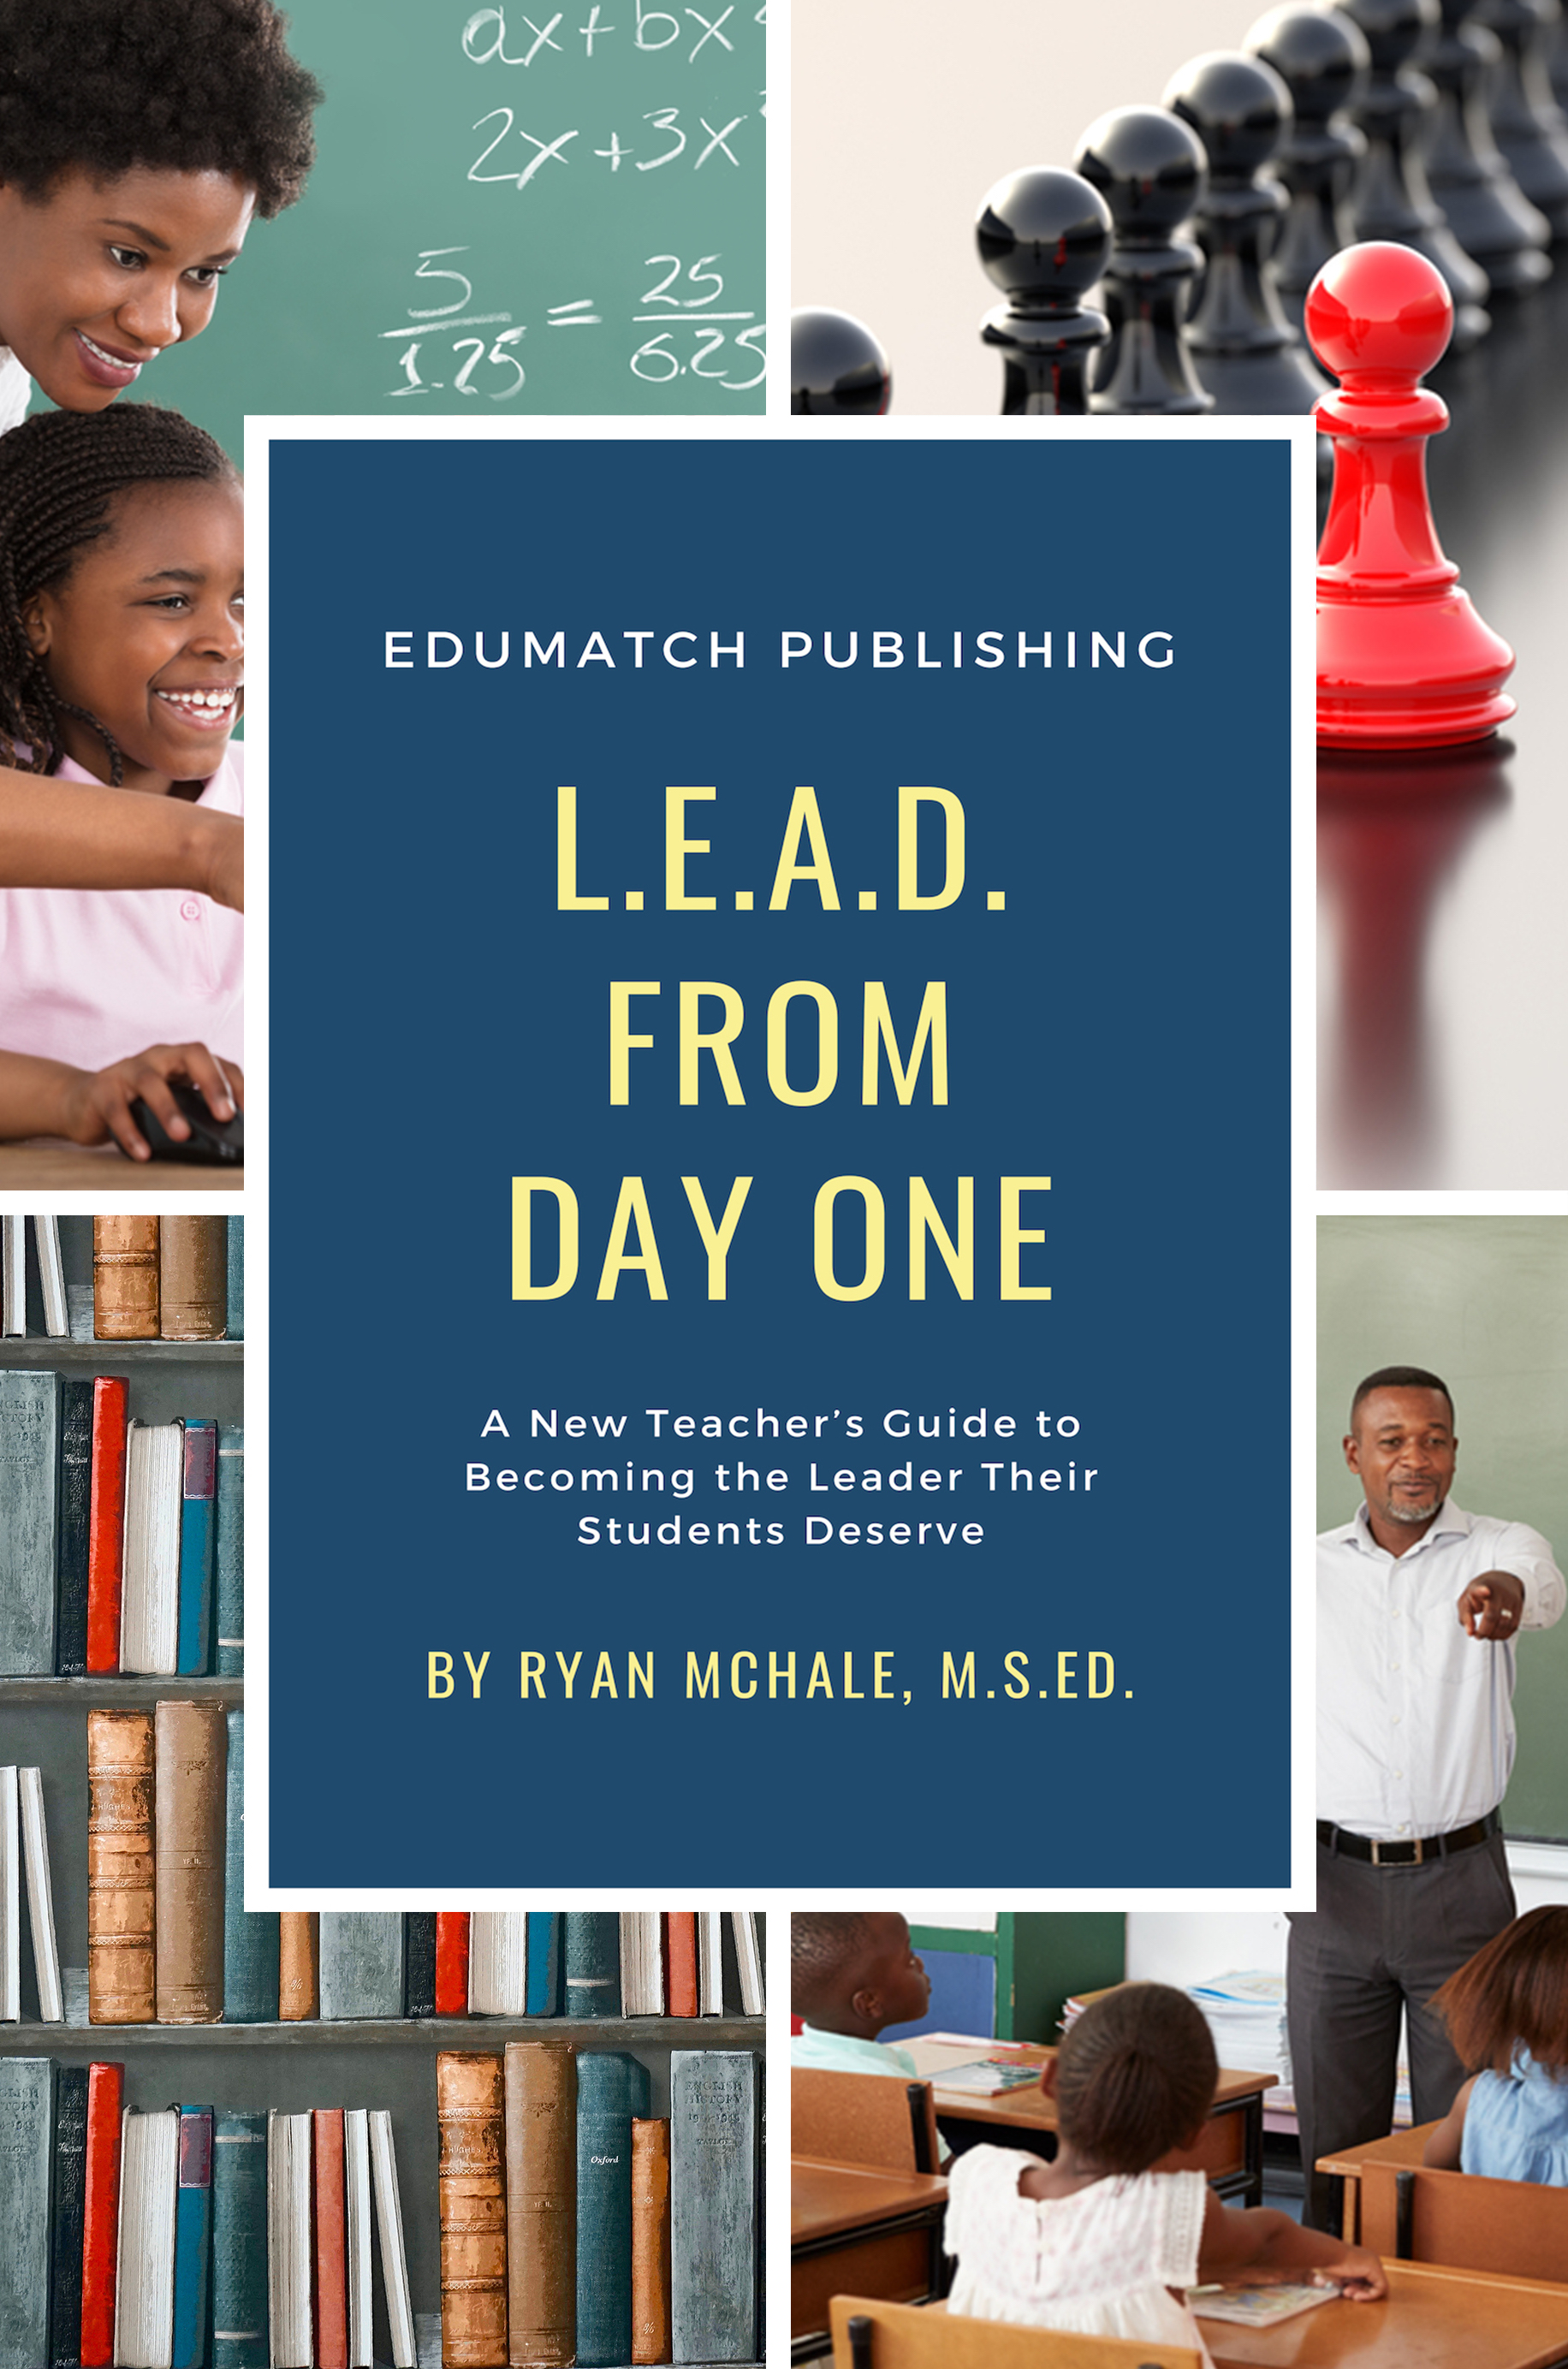 L.E.A.D. from Day One by Ryan McHale